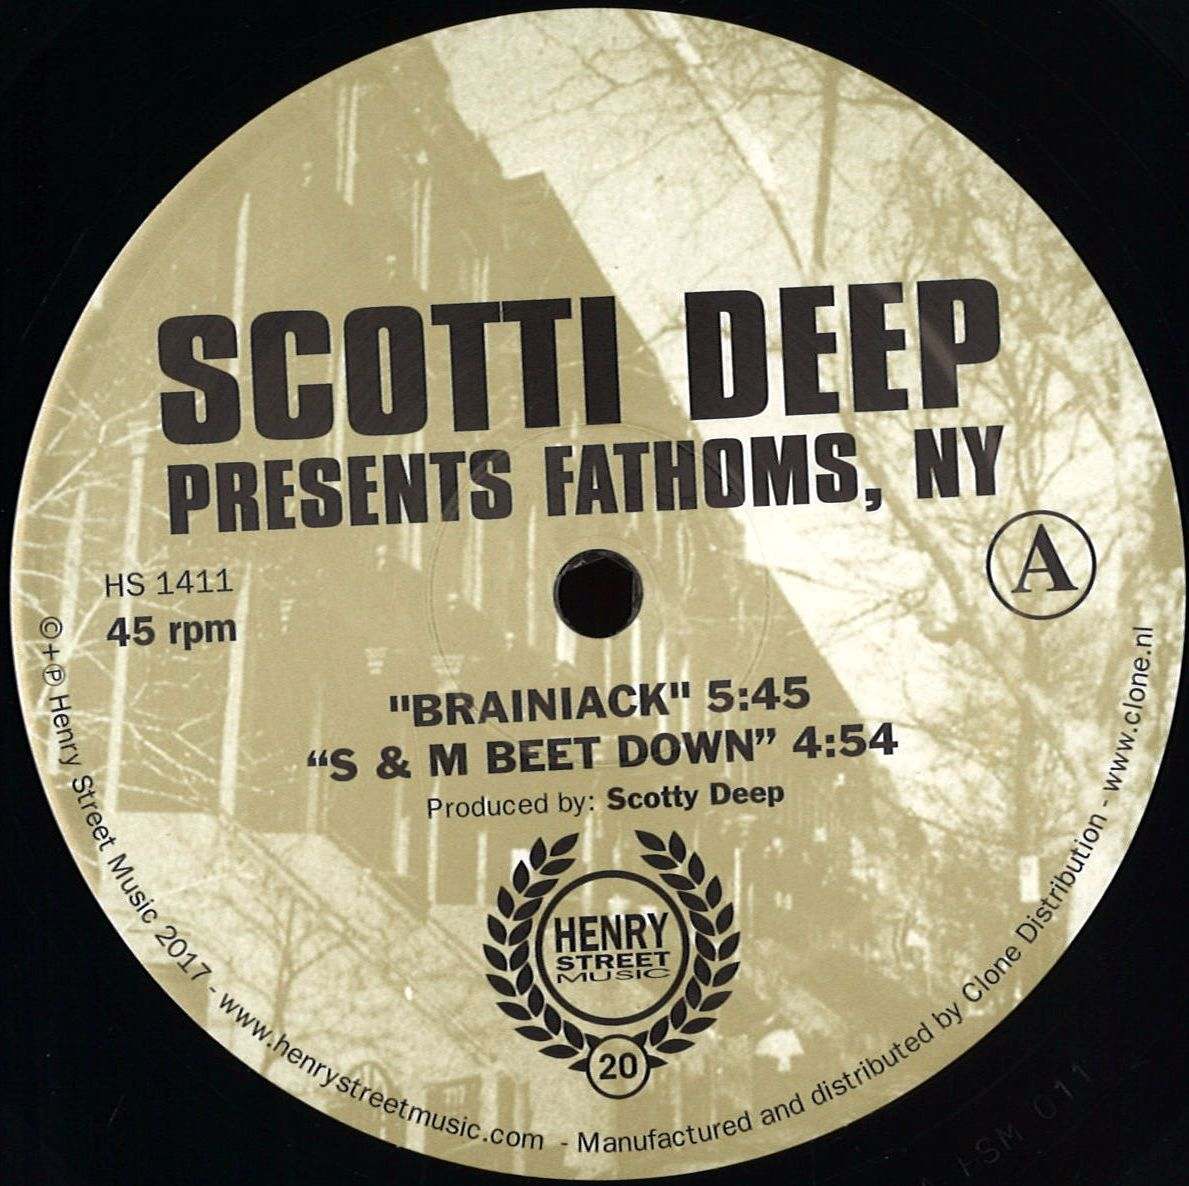 Scotti Deep - Presents Fathom, NY (Henry Street)